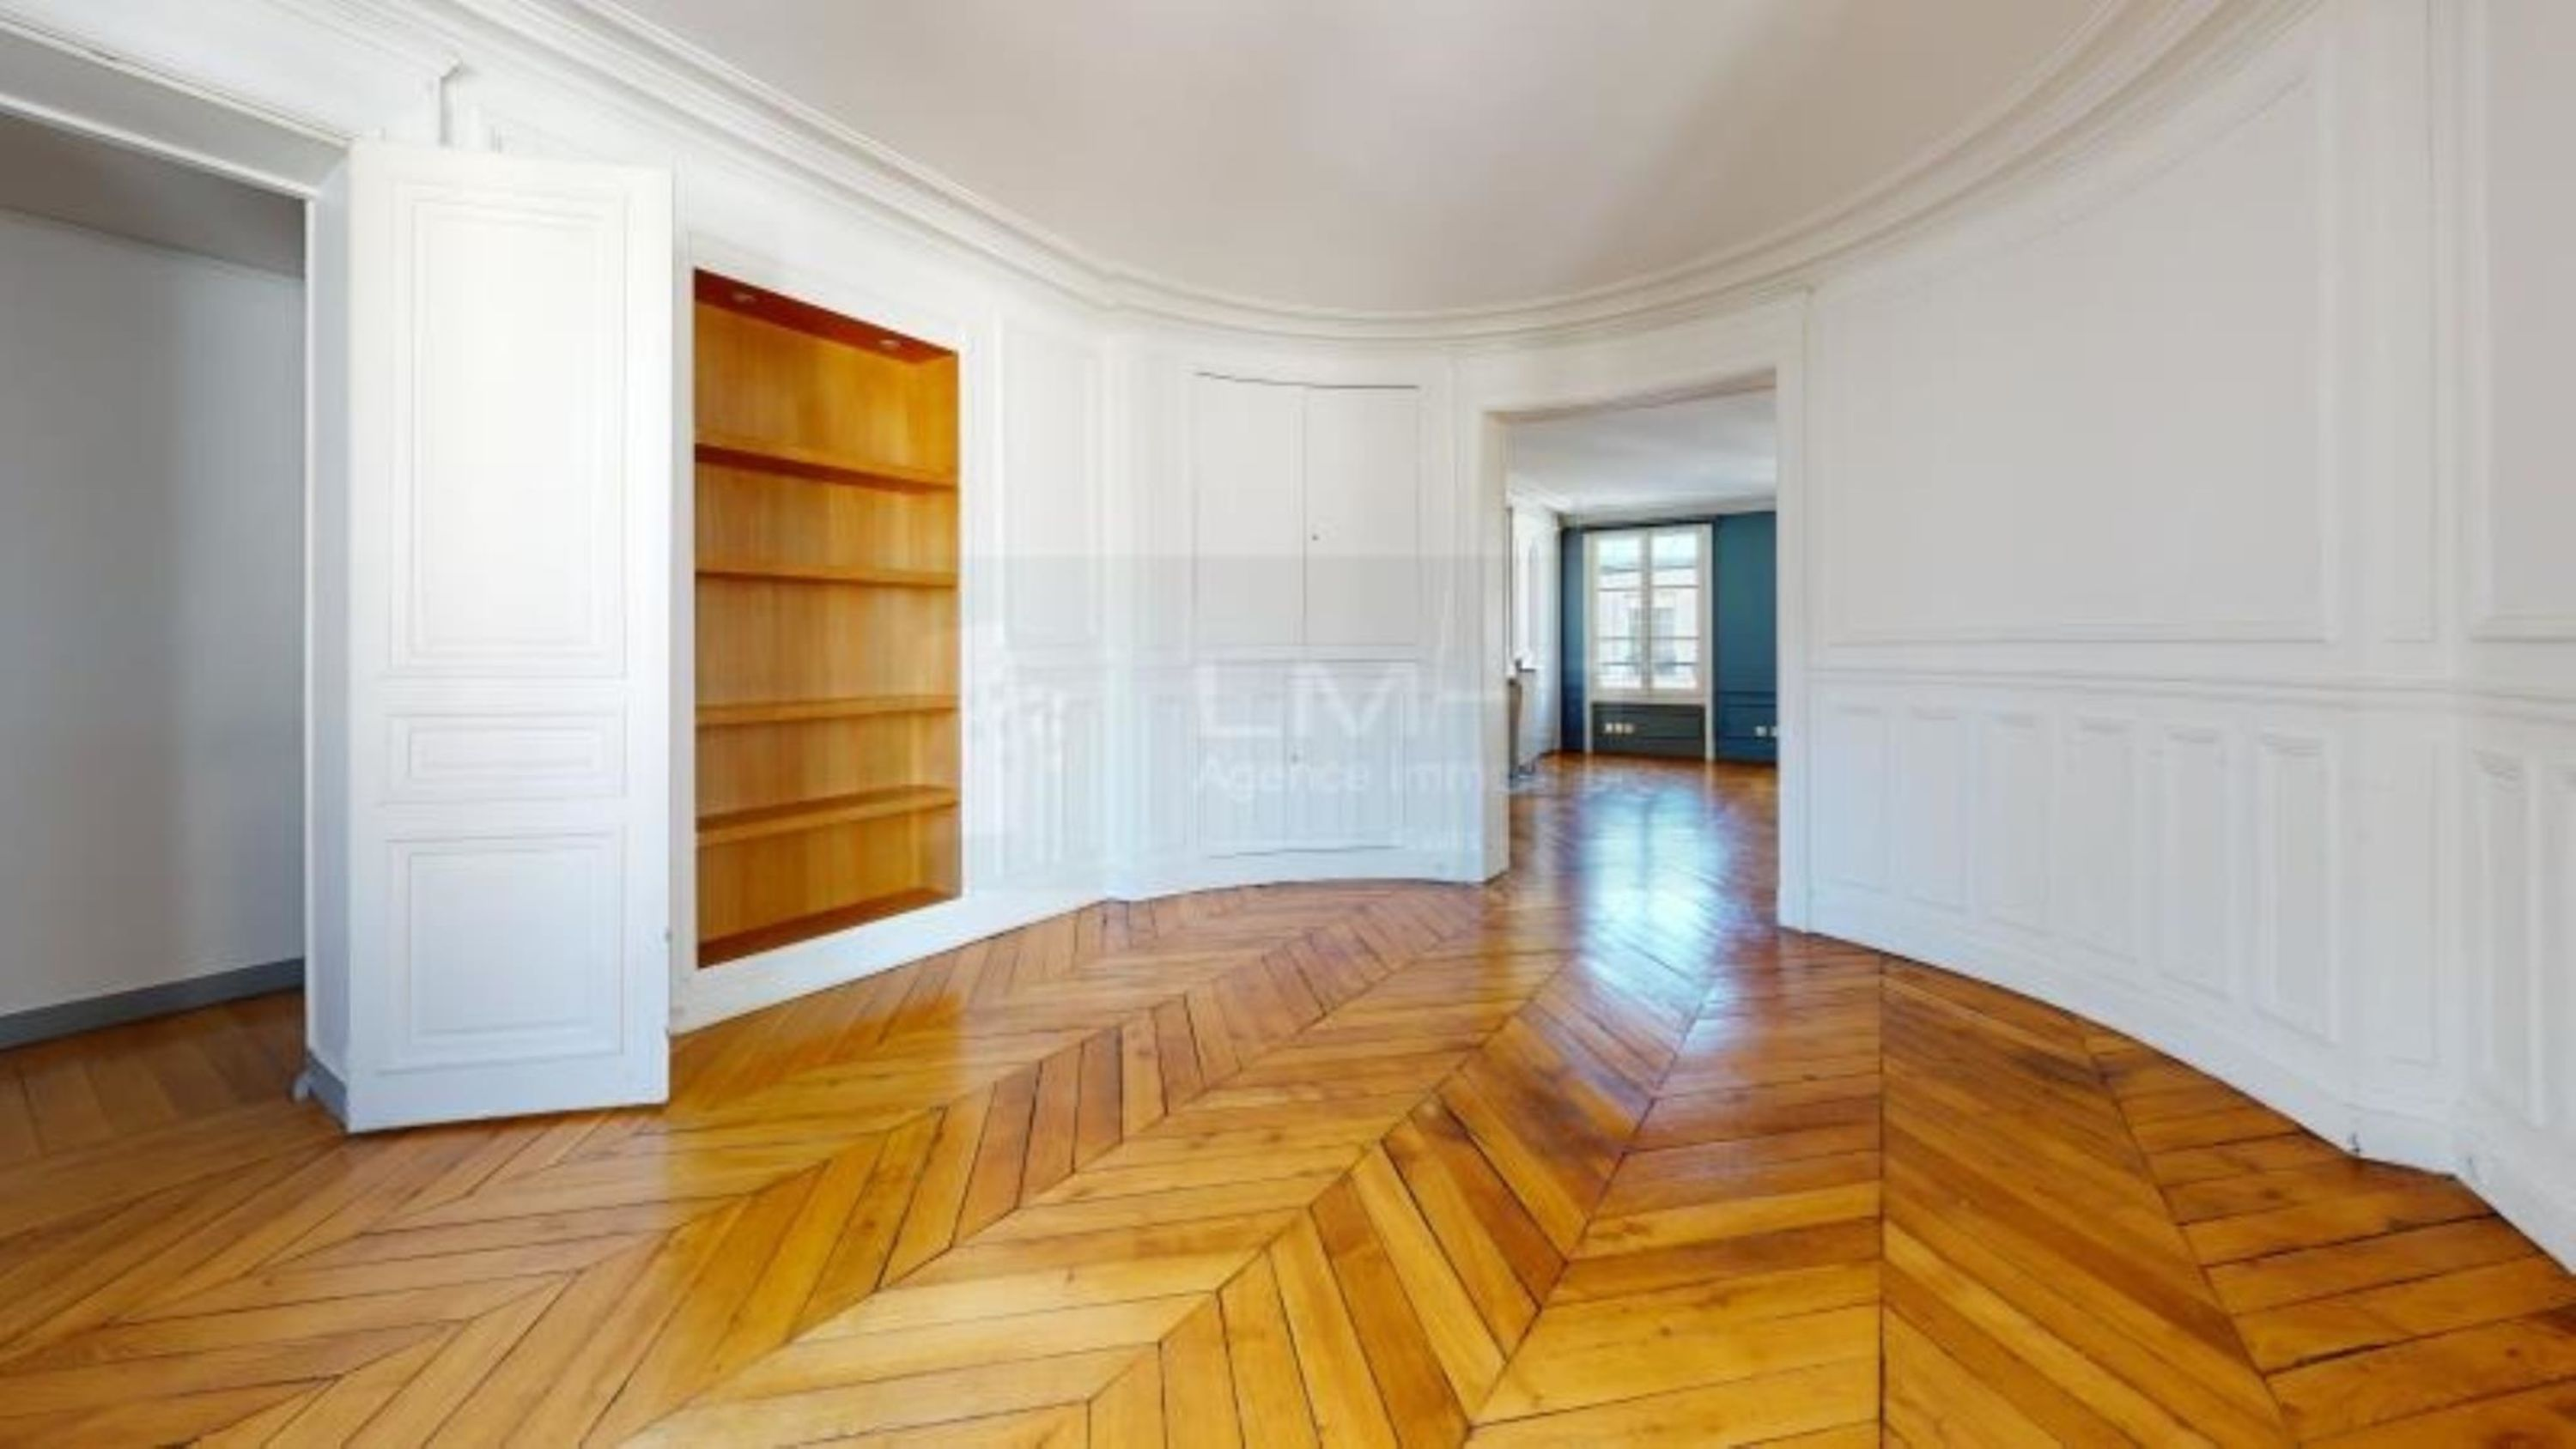 agence immobilière sevres 92 le chesnay 78 achat vente location appartement maison immobilier LMHT ANF BEAAUWOB